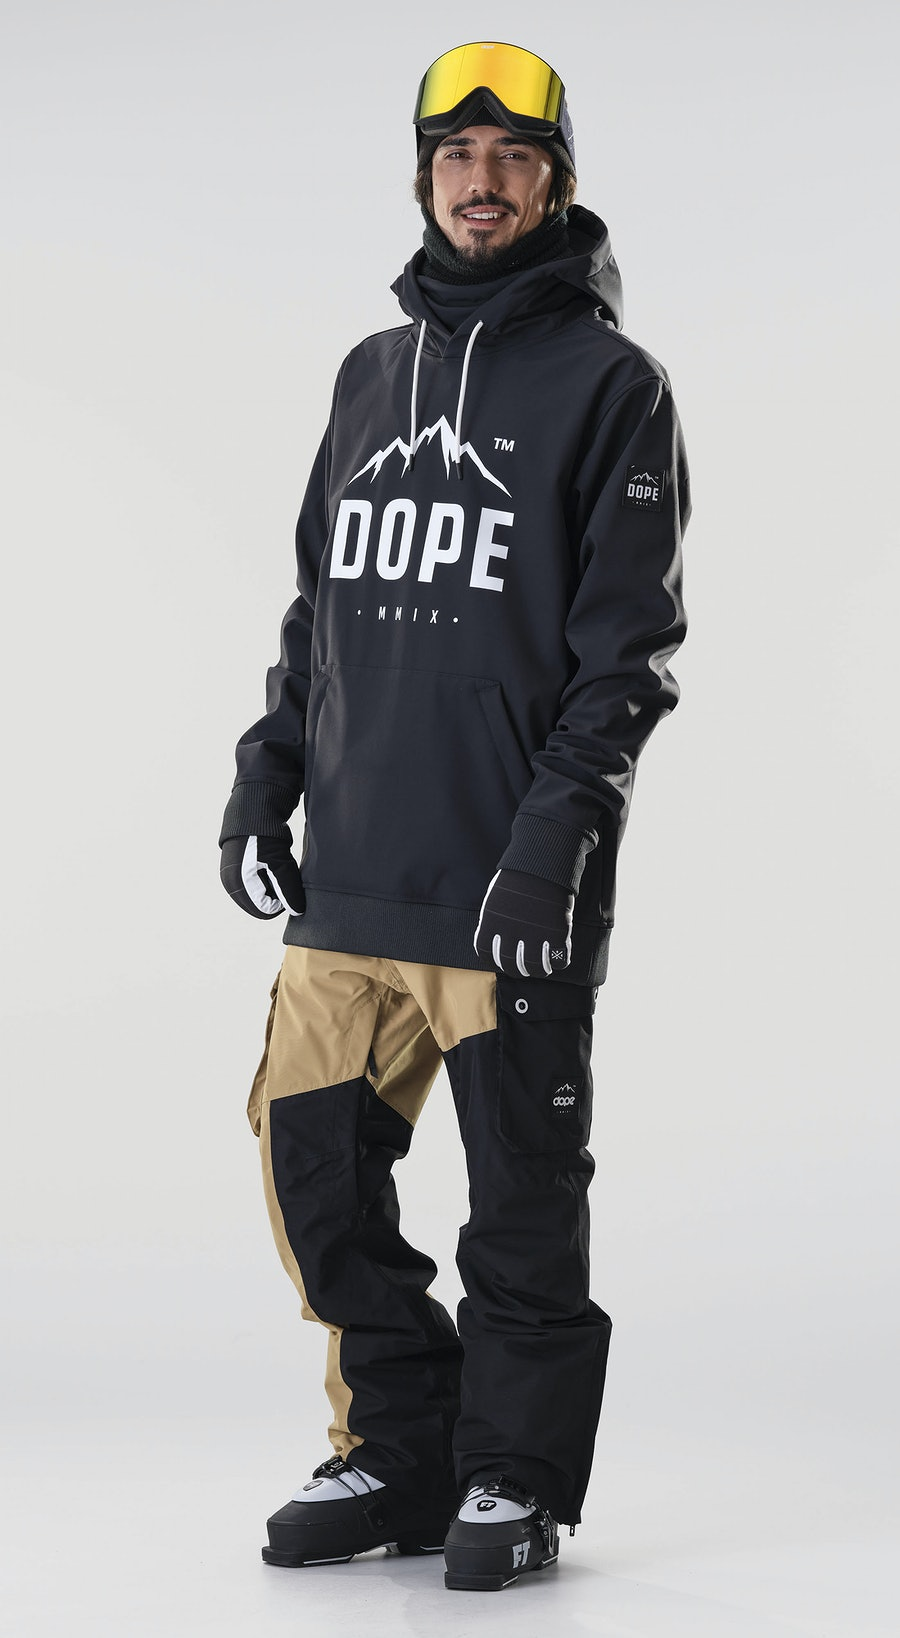 Dope Yeti Paradise Black Ski Clothing Multi